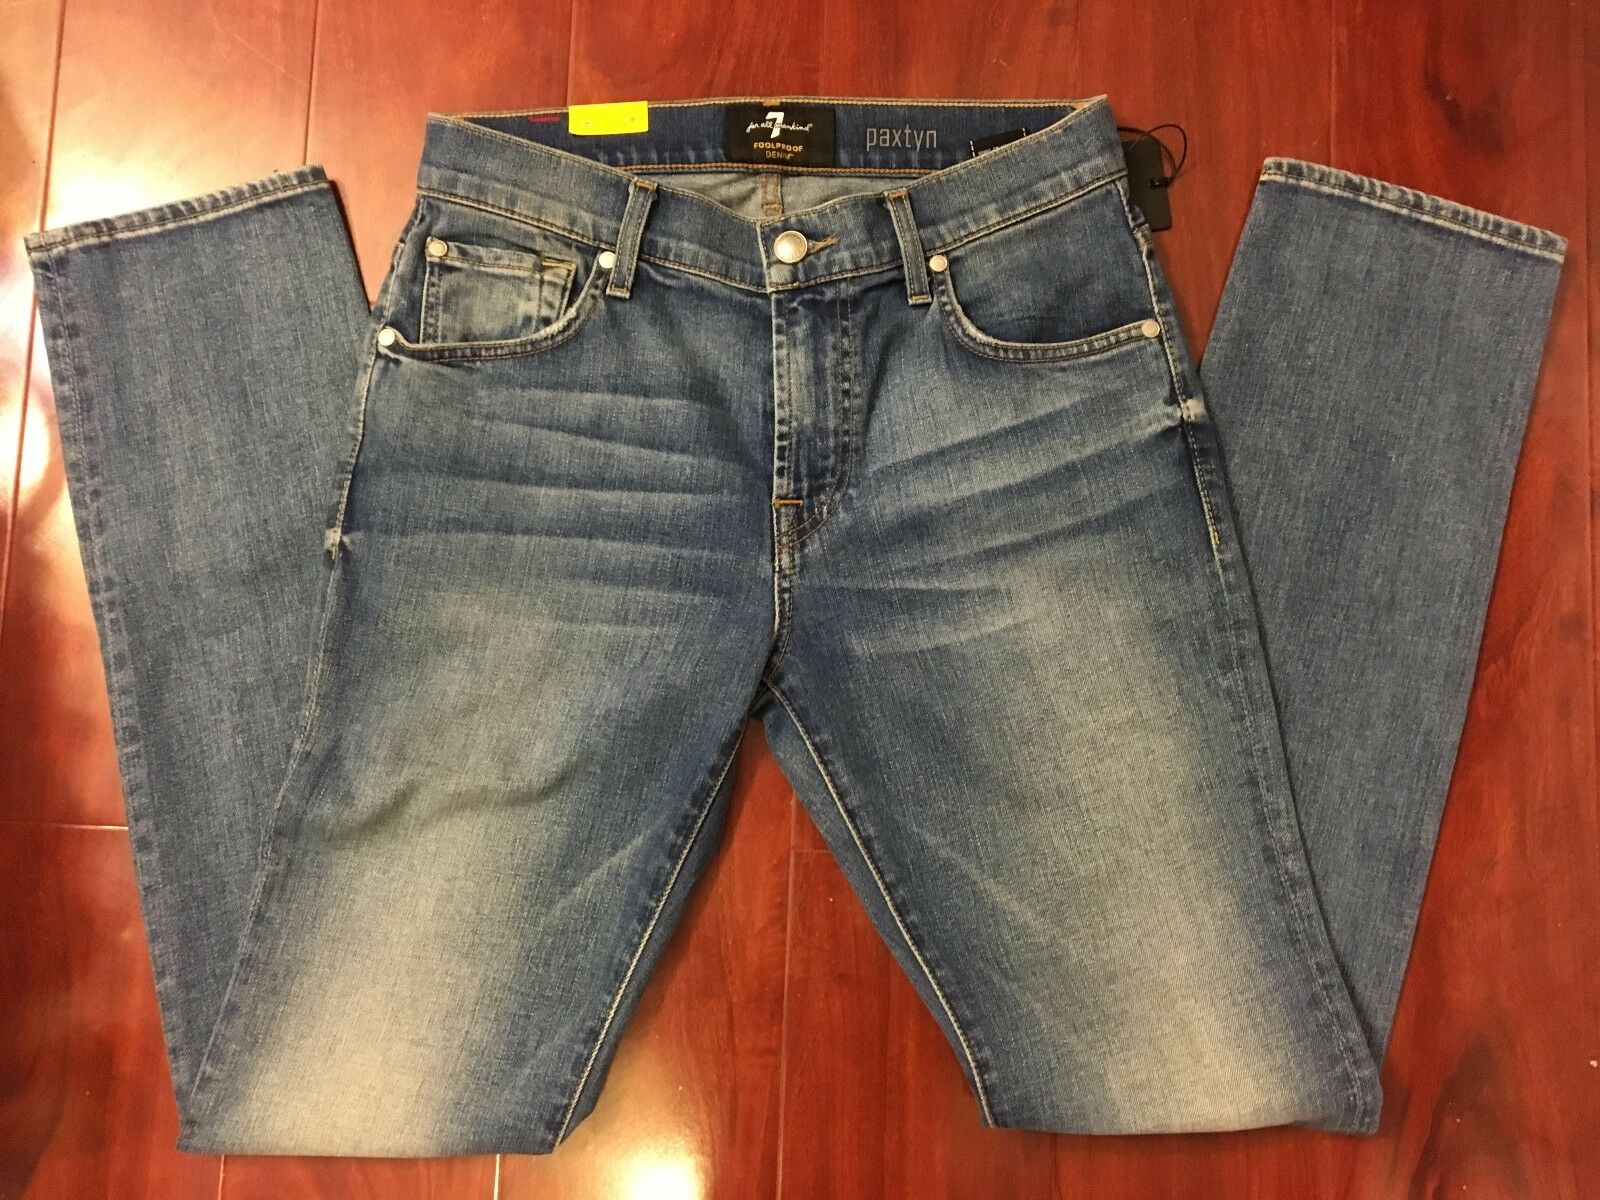 NEW 7 SEVEN FOR ALL MANKIND PAXTYN SKINNY LEG FOOLPROOF DENIM JEANS MEN SIZE 28